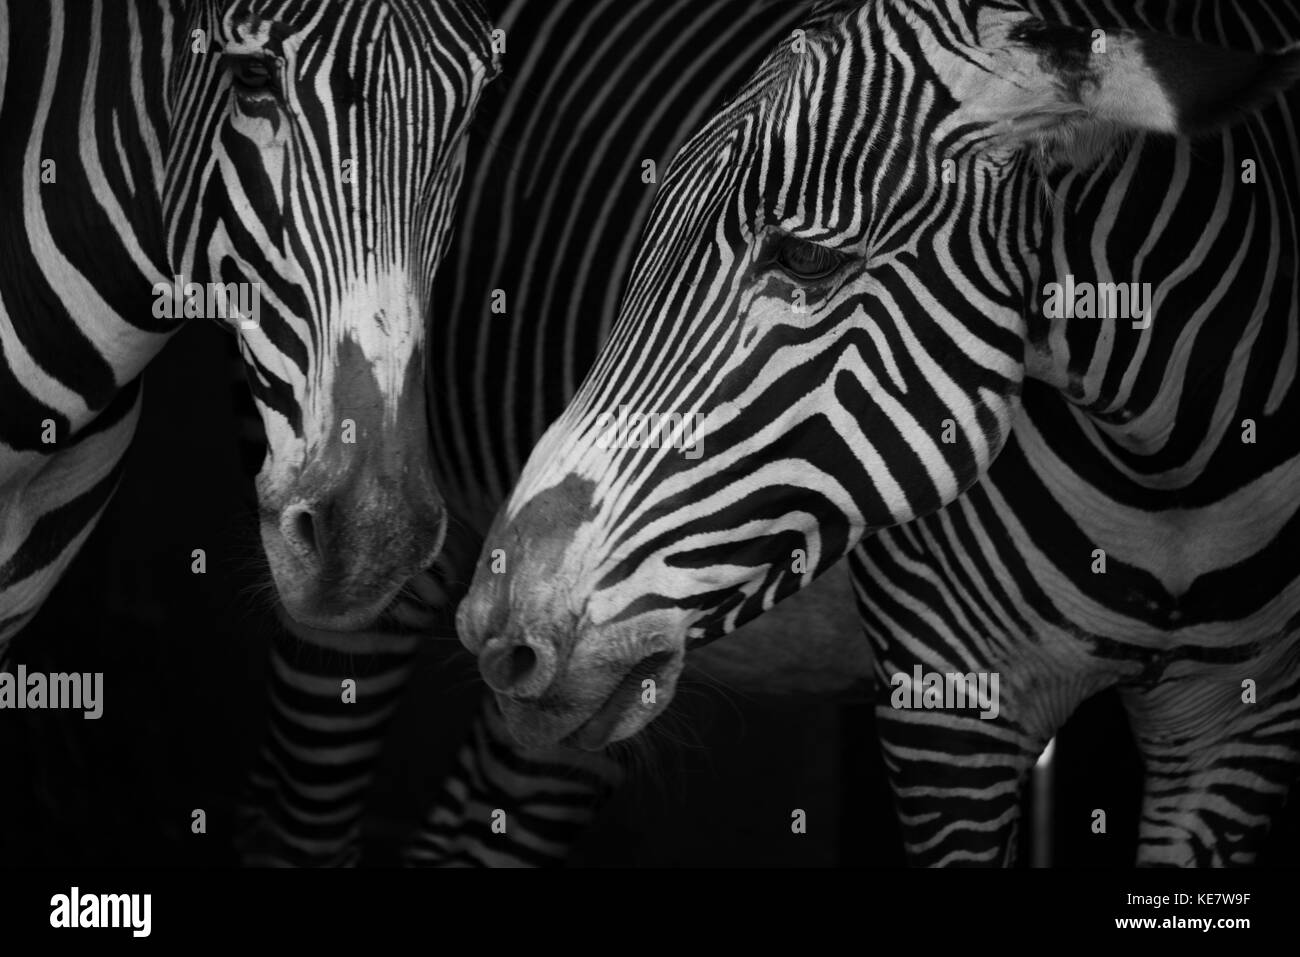 Close-Up Of Two Grevy's Zebra (Equus Grevyi) Side-By-Side; Cabarceno, Cantabria, Spain - Stock Image